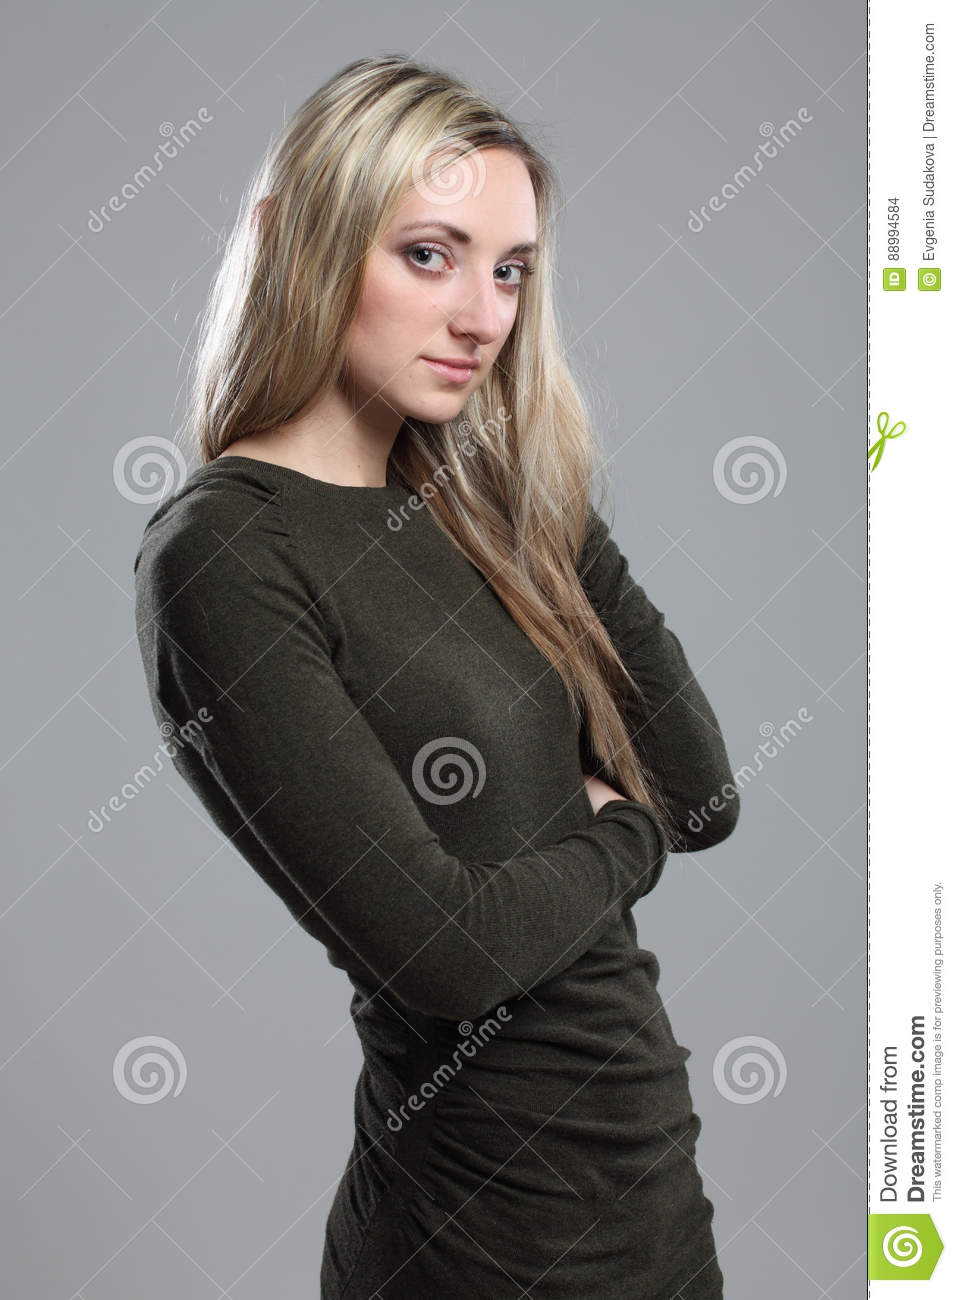 Beautiful Sensuality Teen Girl With Long Hair: Young Sensuality Beautiful Woman Portrait Stock Image